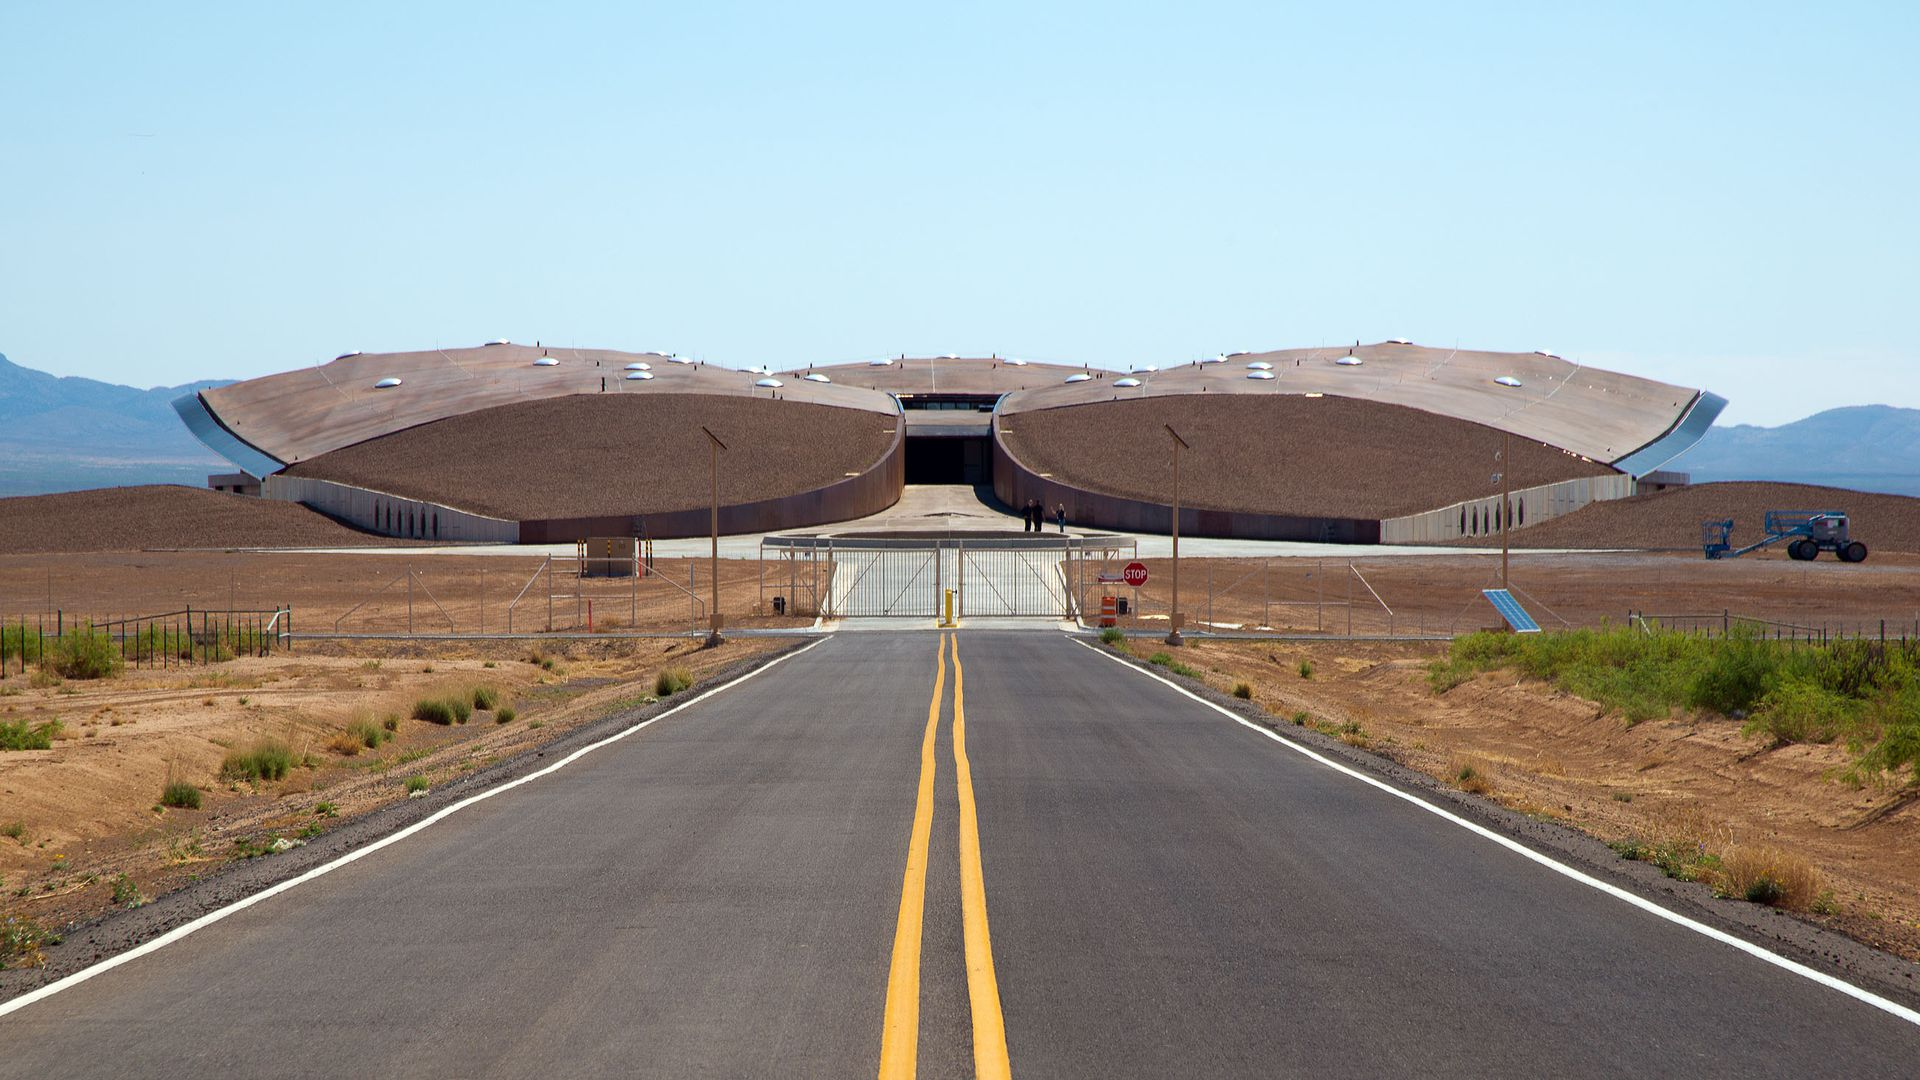 In this image, Spaceport America is seen at the end of a long desert road. It looks like a large drone.